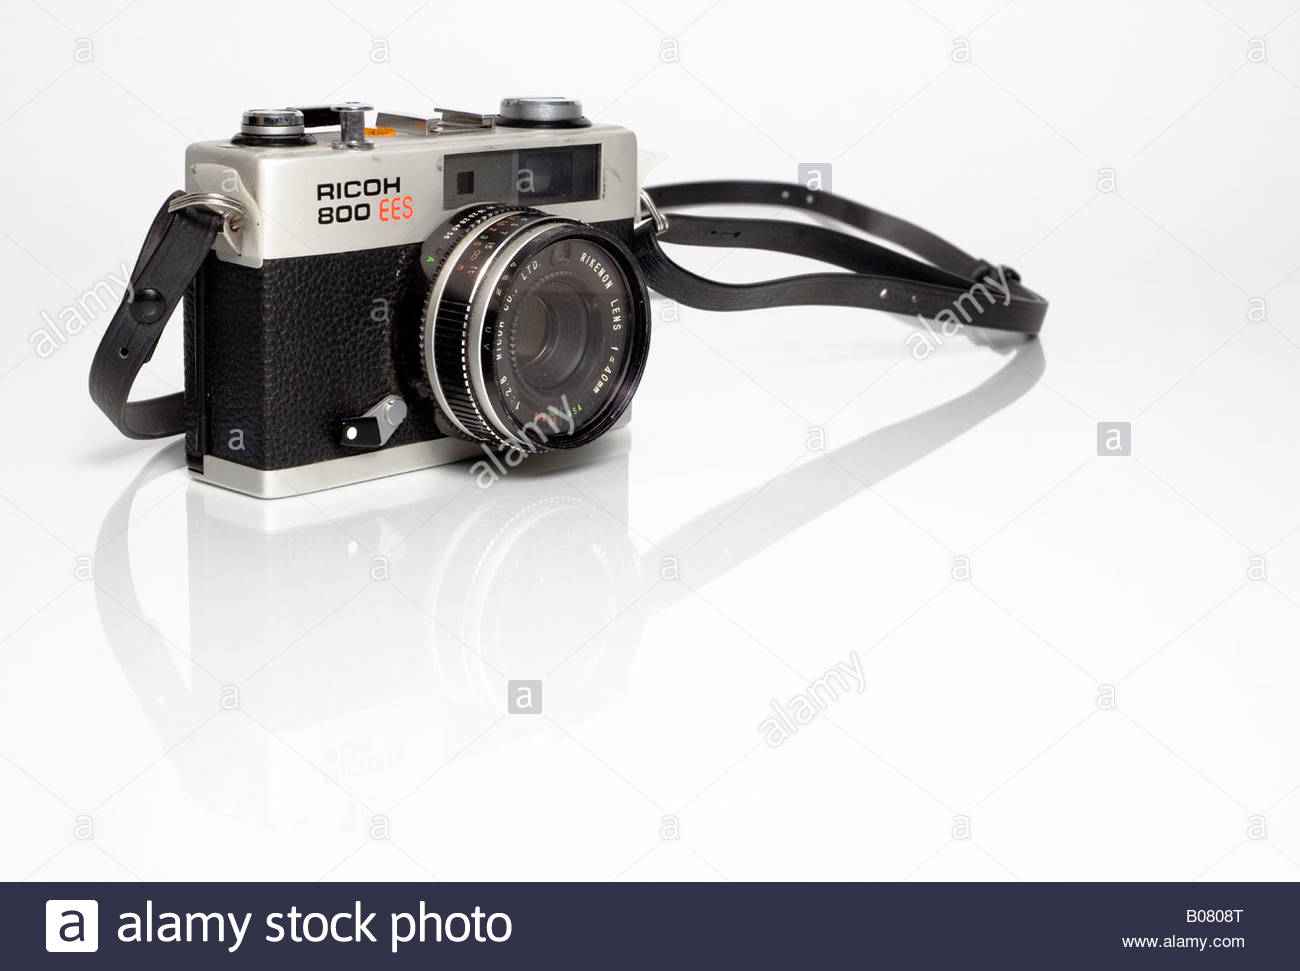 Ricoh 800 Vintage Film Camera with Strap on White Background Stock 1300x971